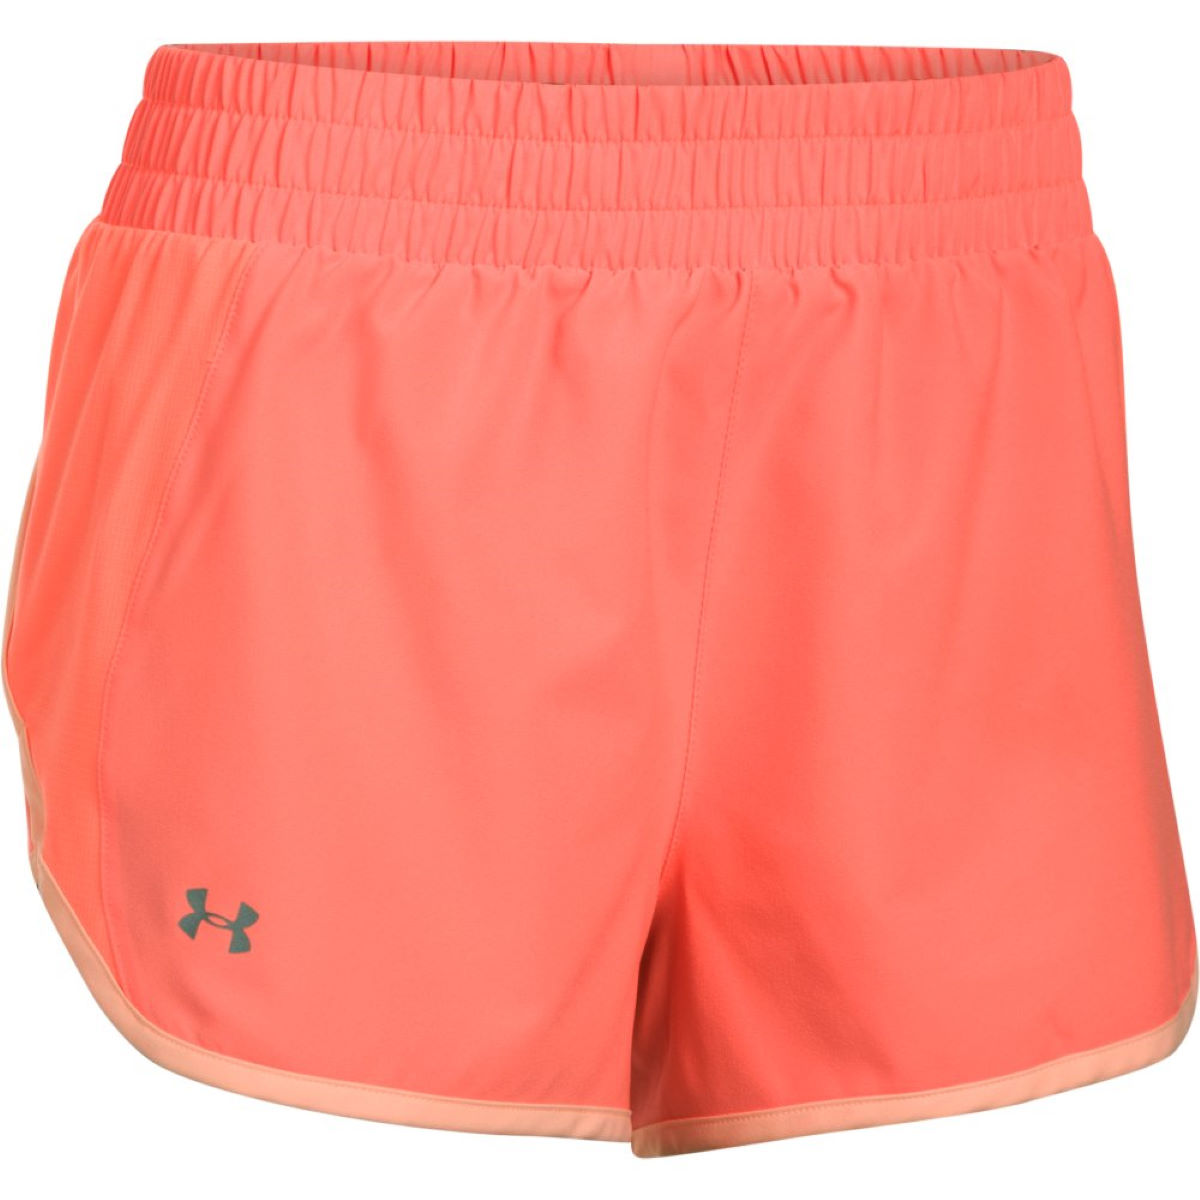 Short Femme Under Armour Launch Tulip (PE17) - XL Orange/Peach